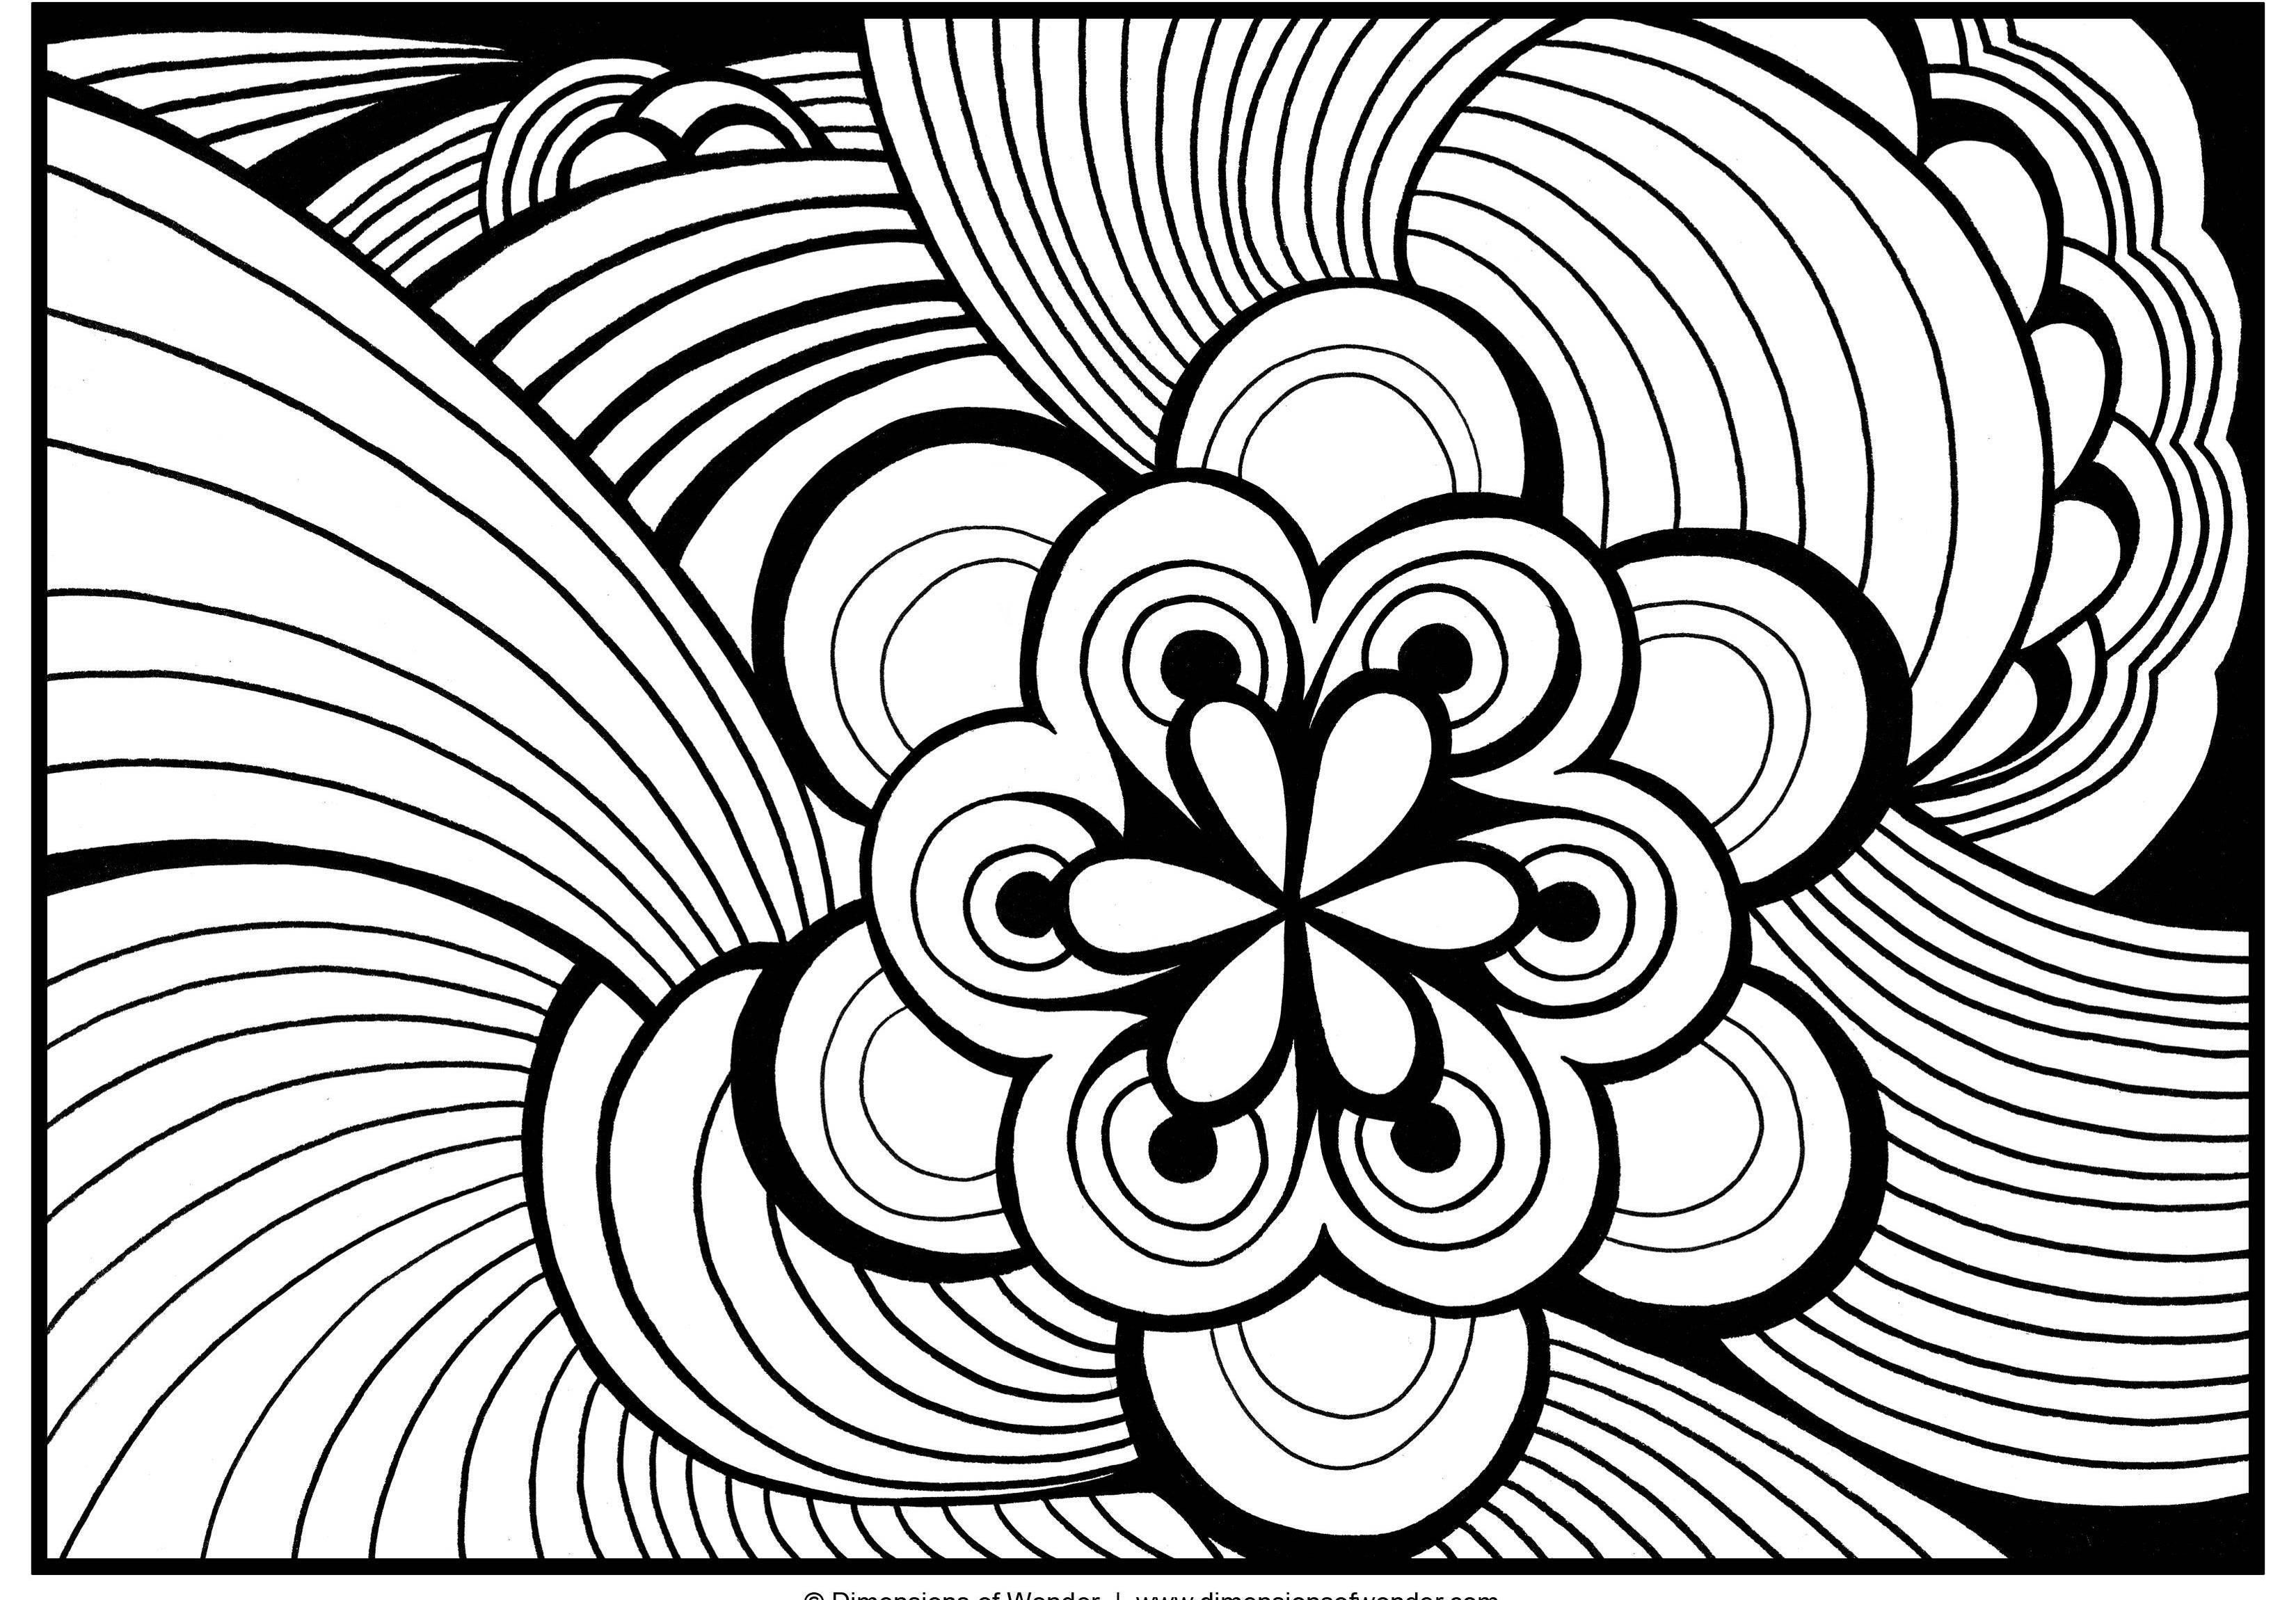 Adult Top Coloring Pages For Free Online Gallery Images top free online adult coloring pages az for adults kids and gallery images